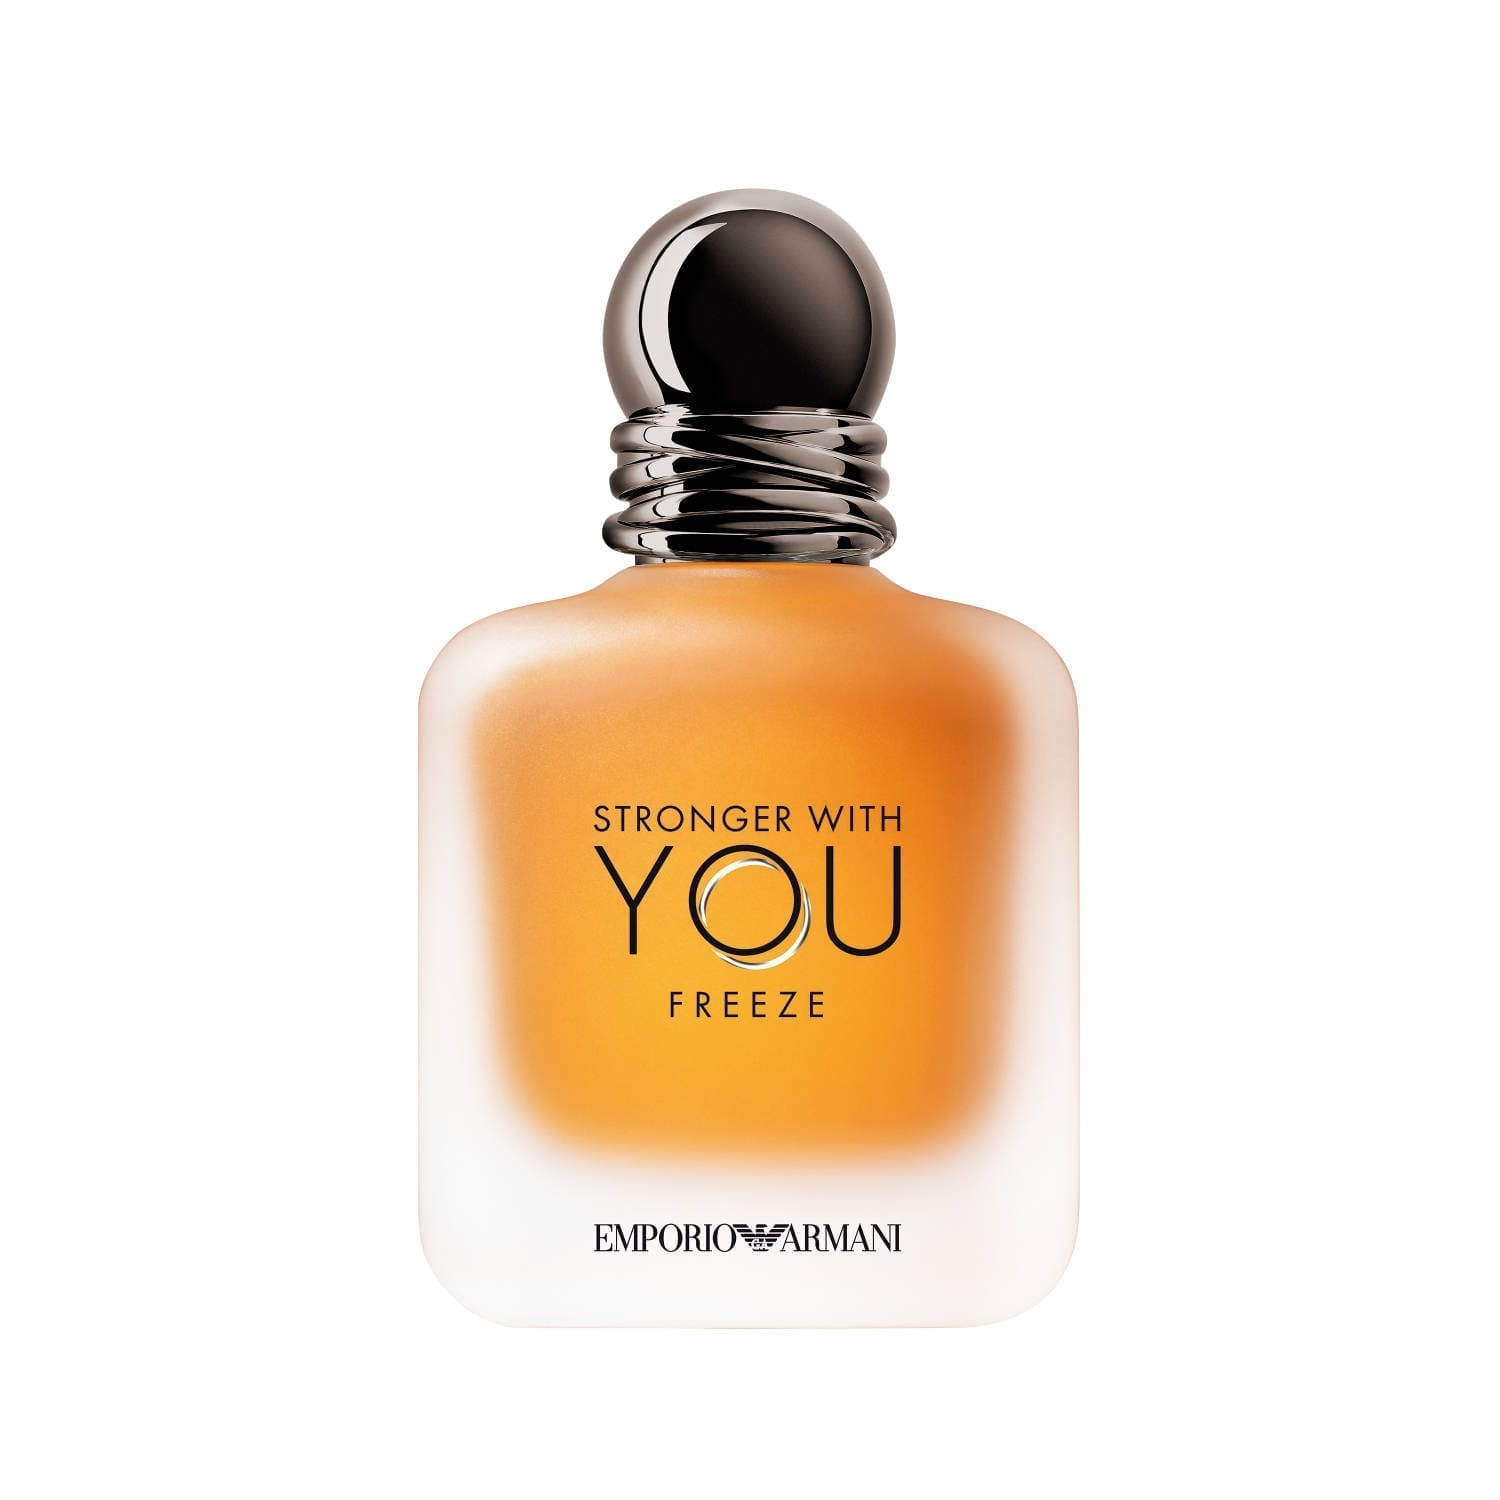 Stronger with You Freeze-Emporio Armani